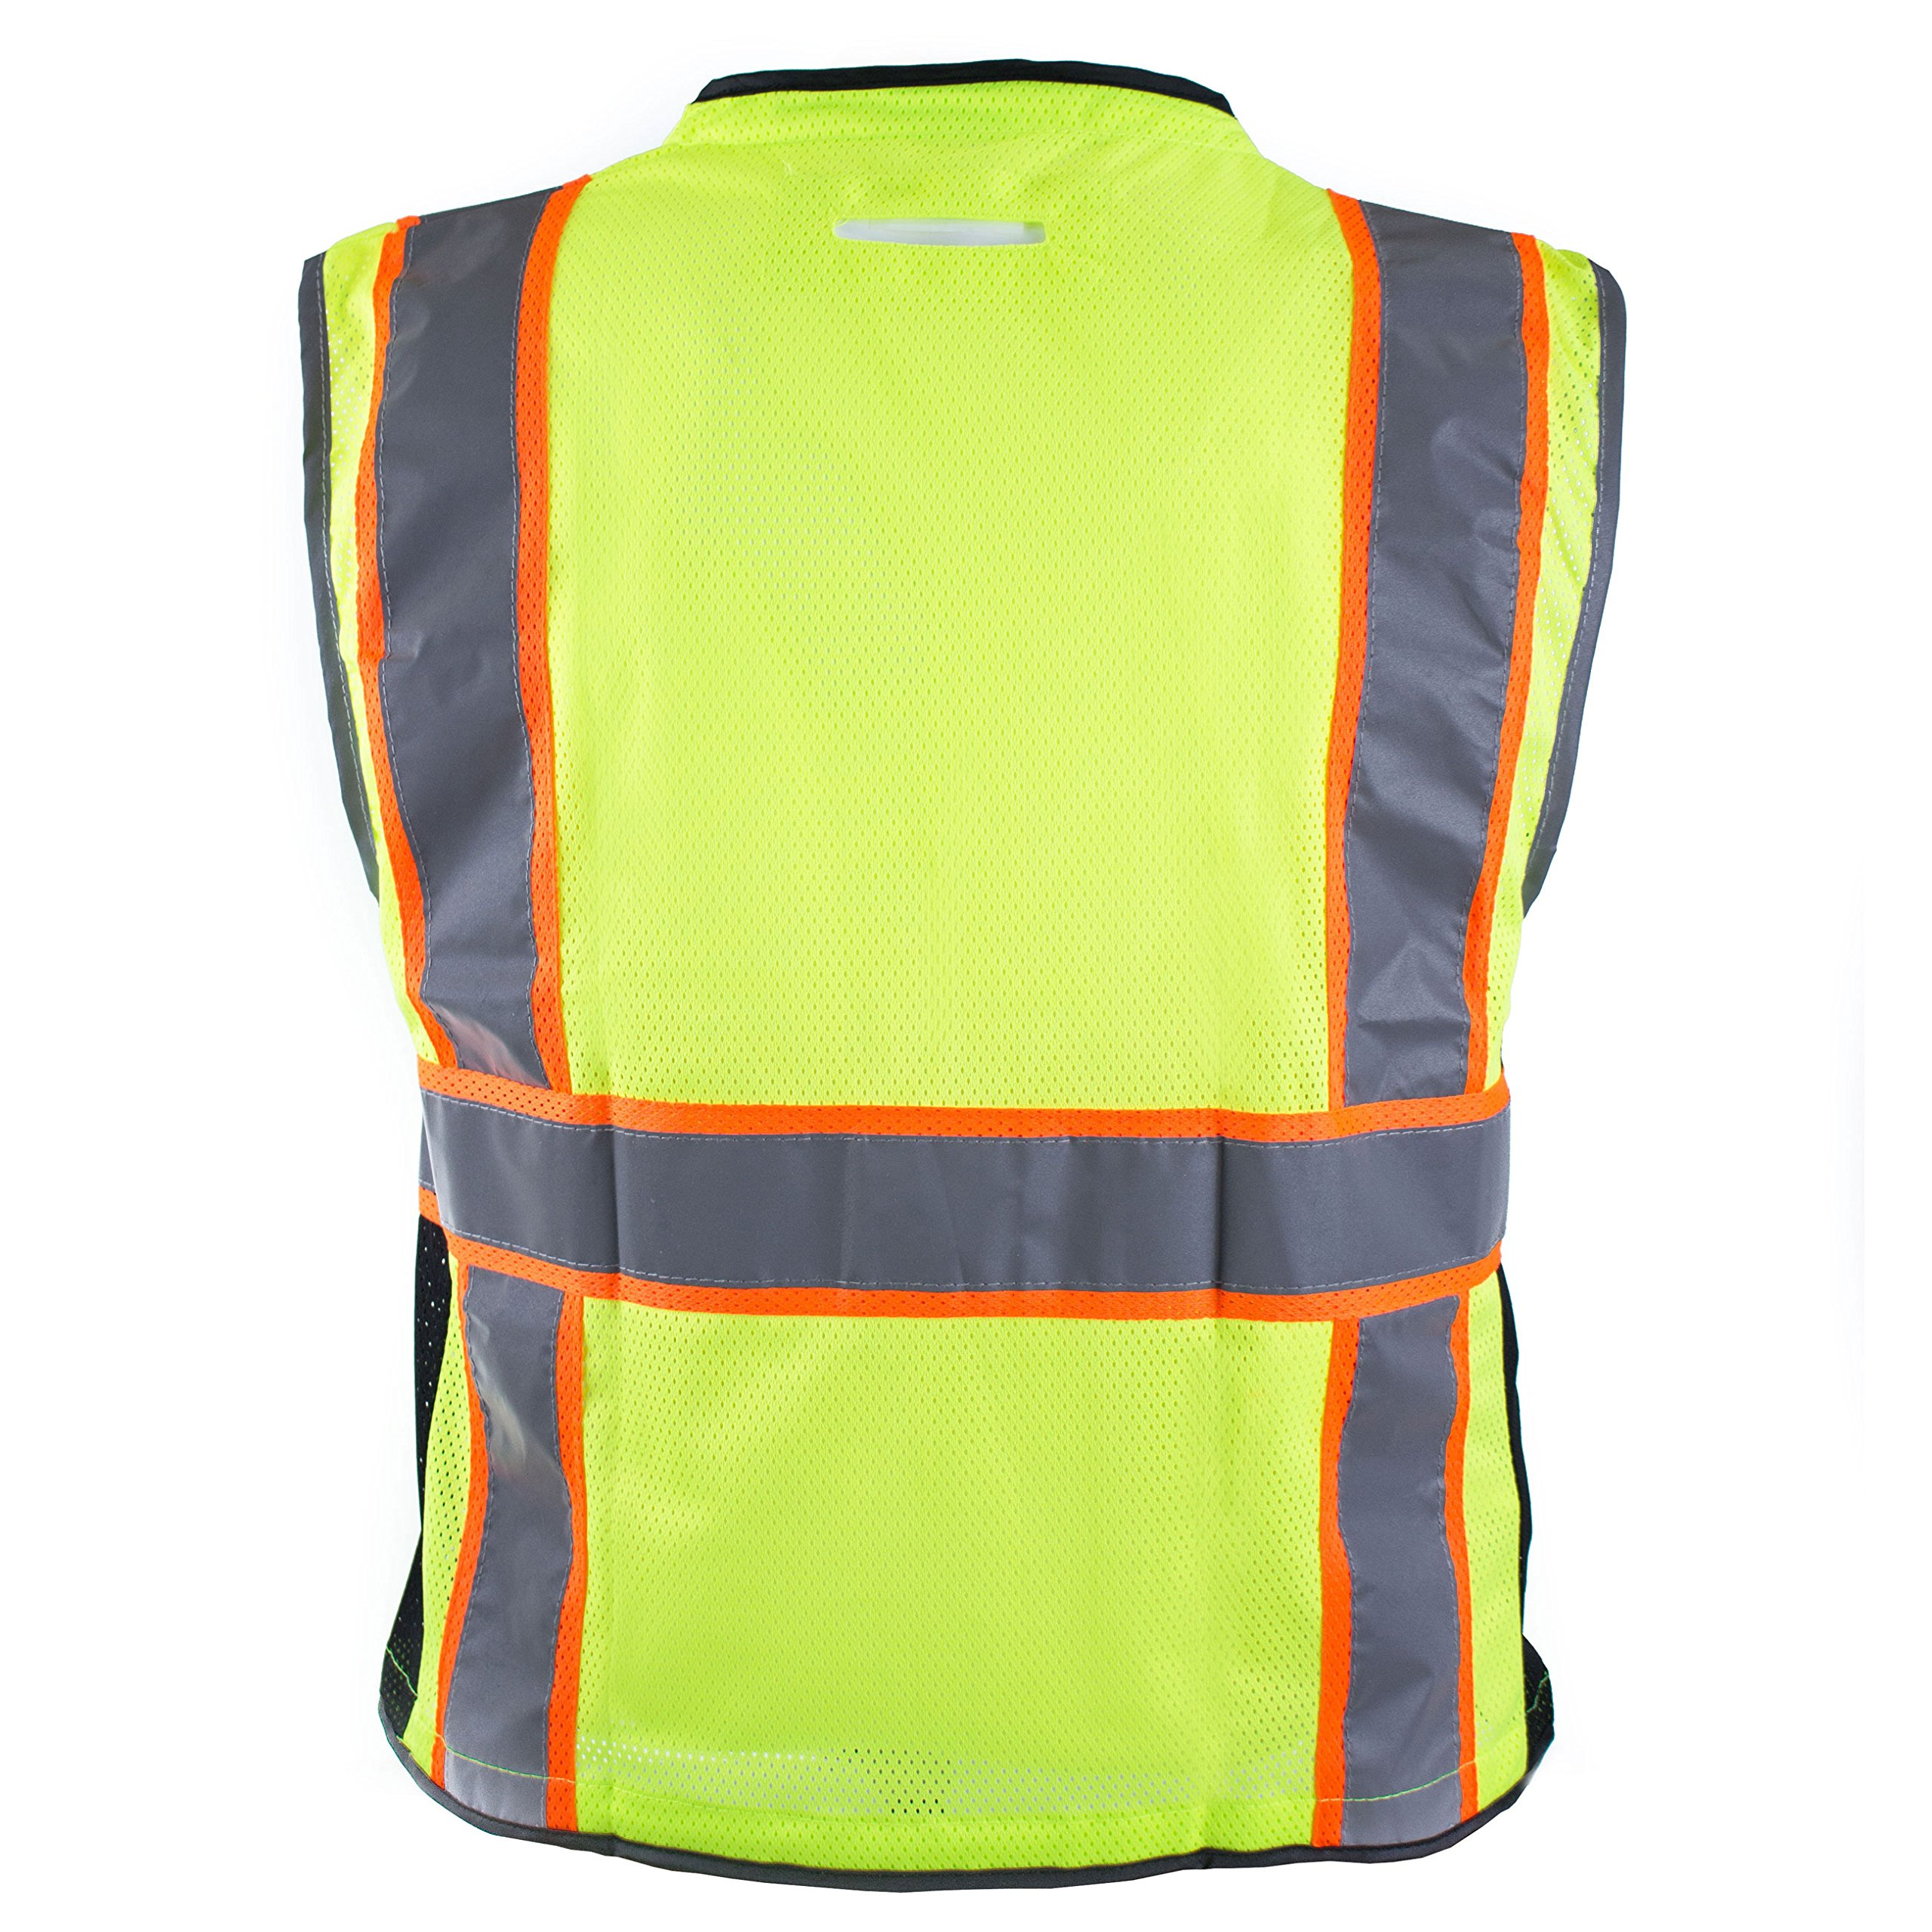 RK Safety P6612 Class 2 High Visible Two Tone Reflective Strips Breathable Mesh Vest, Pockets Harness D-Ring Pass Thru, ANSI/ISEA, Construction Motorcycle Traffic Emergency (Lime, Medium) by New York Hi-Viz Workwear (Image #10)